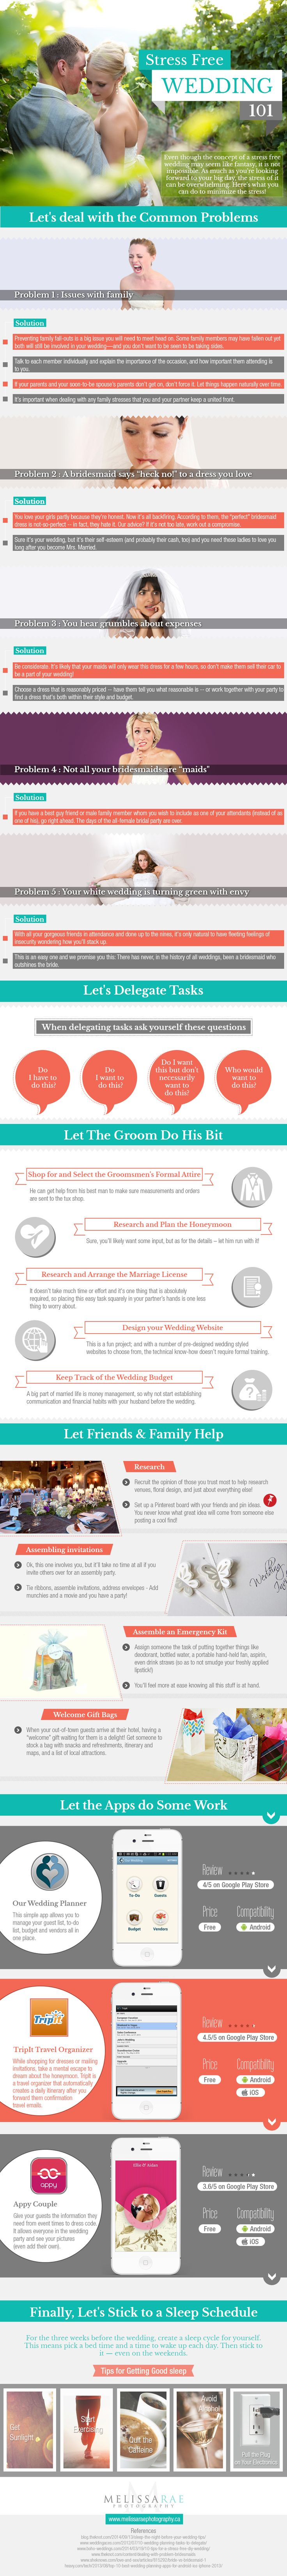 So many Brides will experience these problems while wedding planning. Beat them to the punch and know how to deal with wedding stress before it happens! -- infographic by Melissa Rae Photography